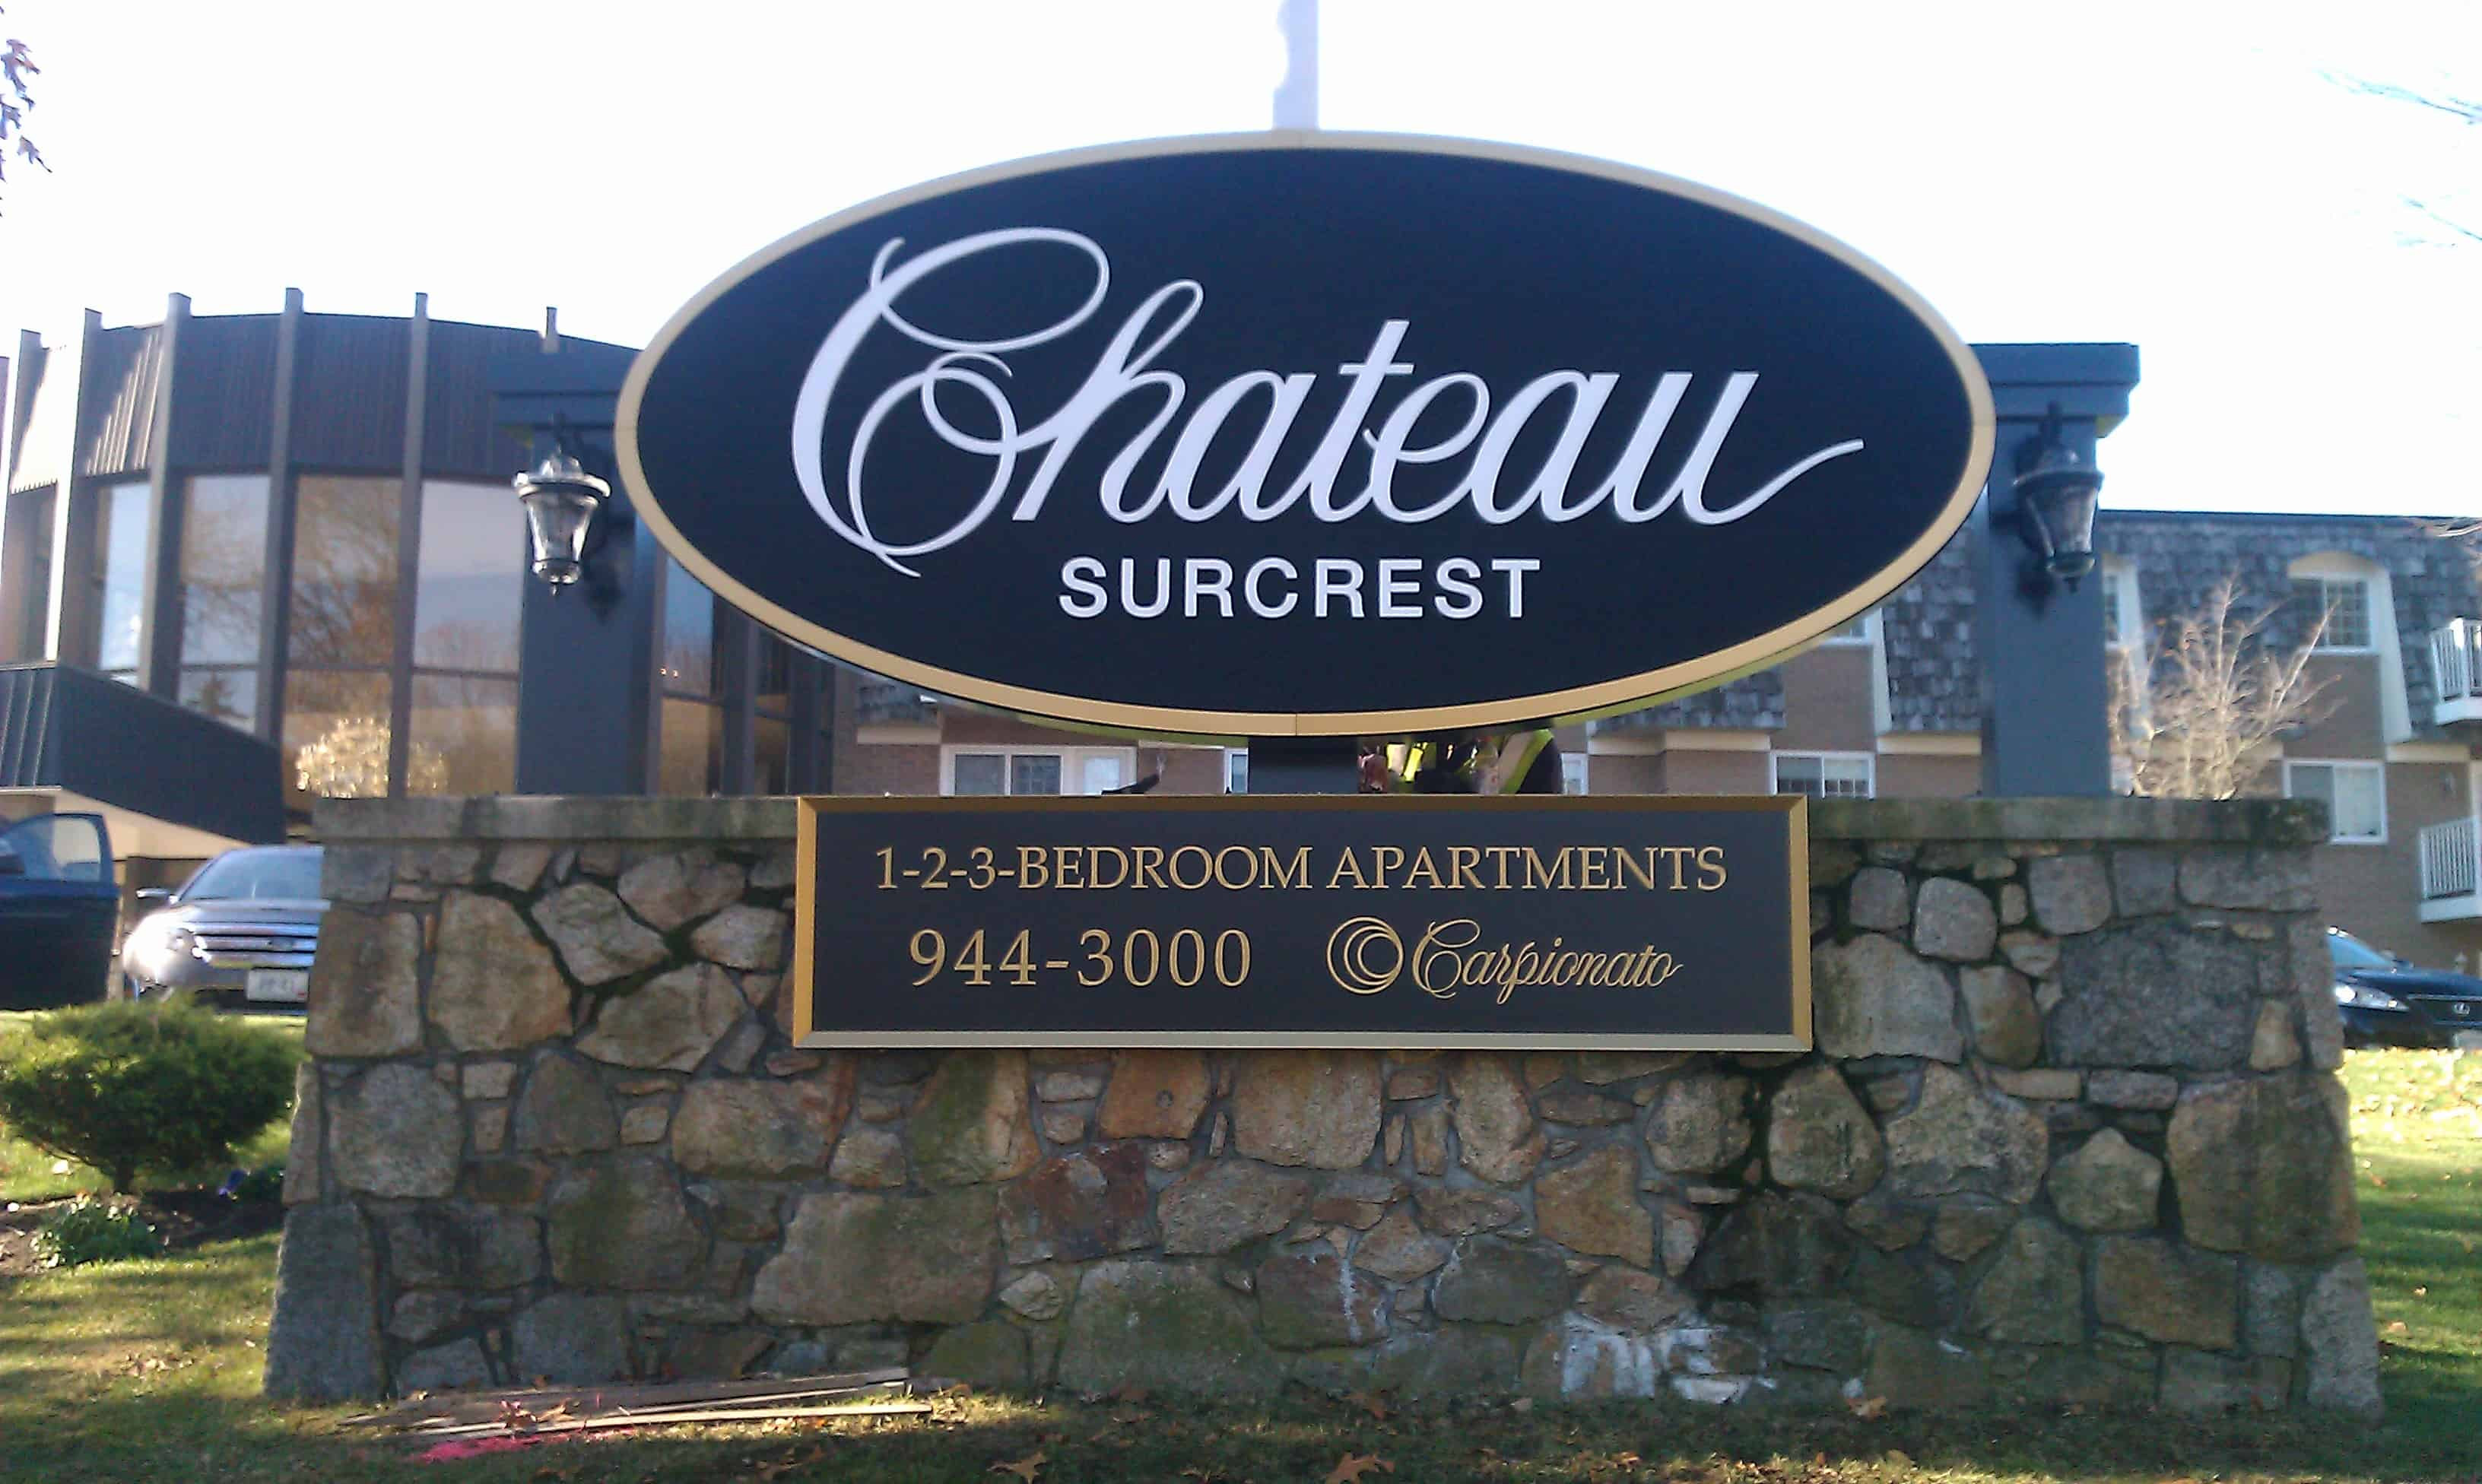 Chateau SurCrest Monument Sign